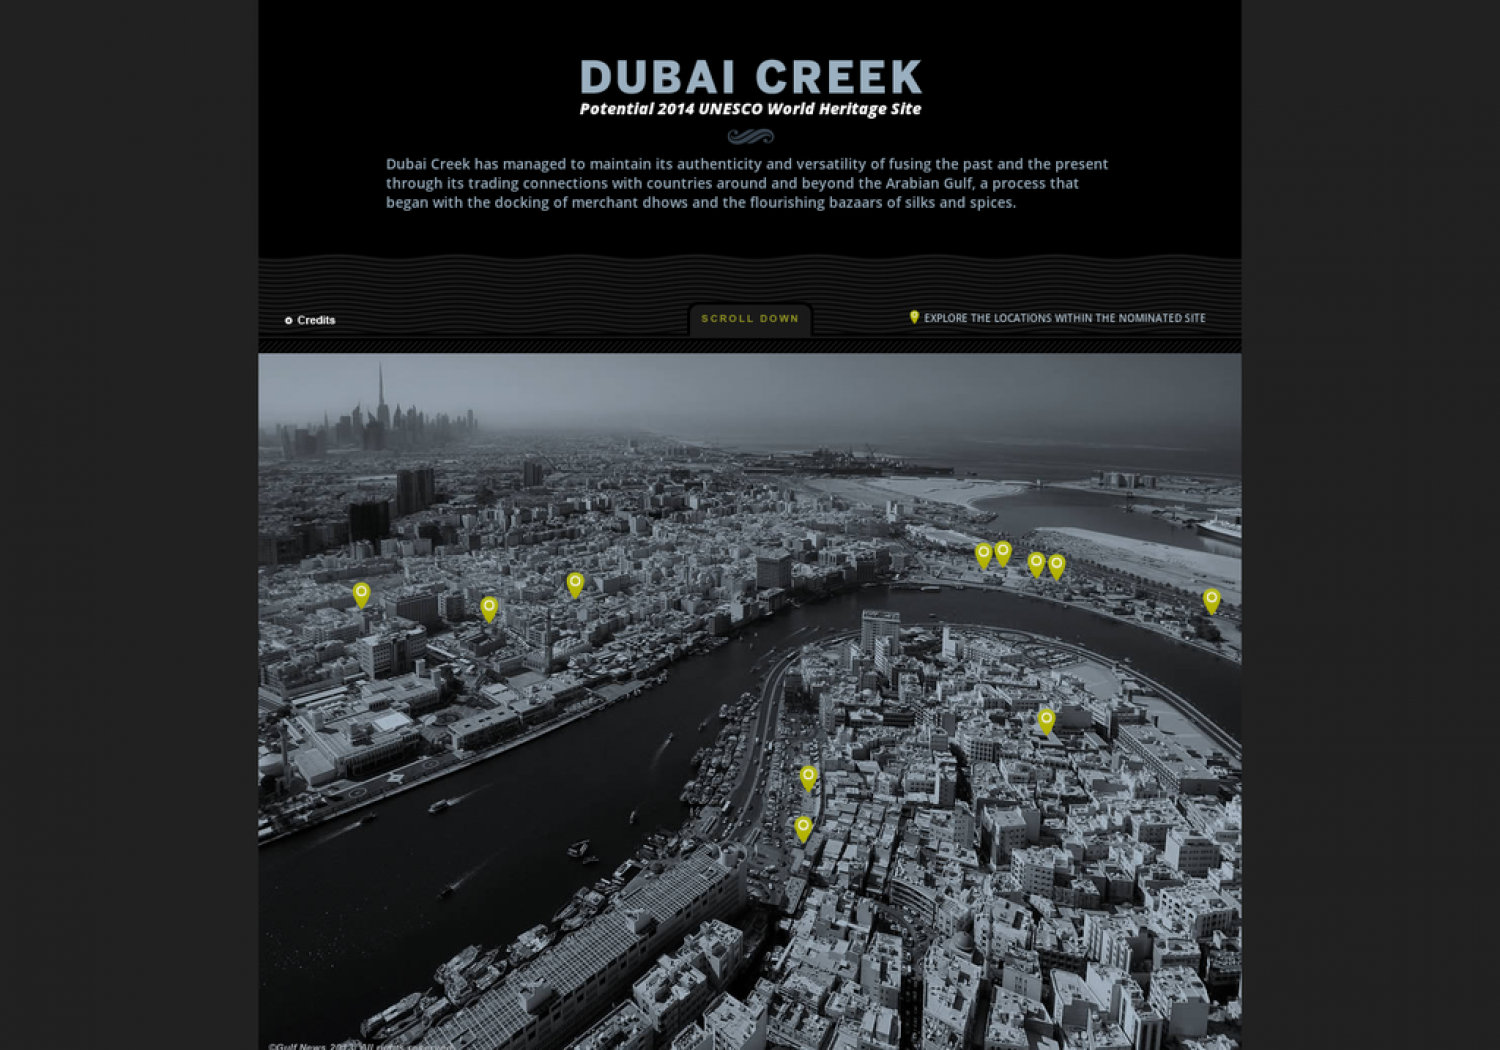 Dubai Creek, potential 2014 UNESCO World Heritage Site Infographic